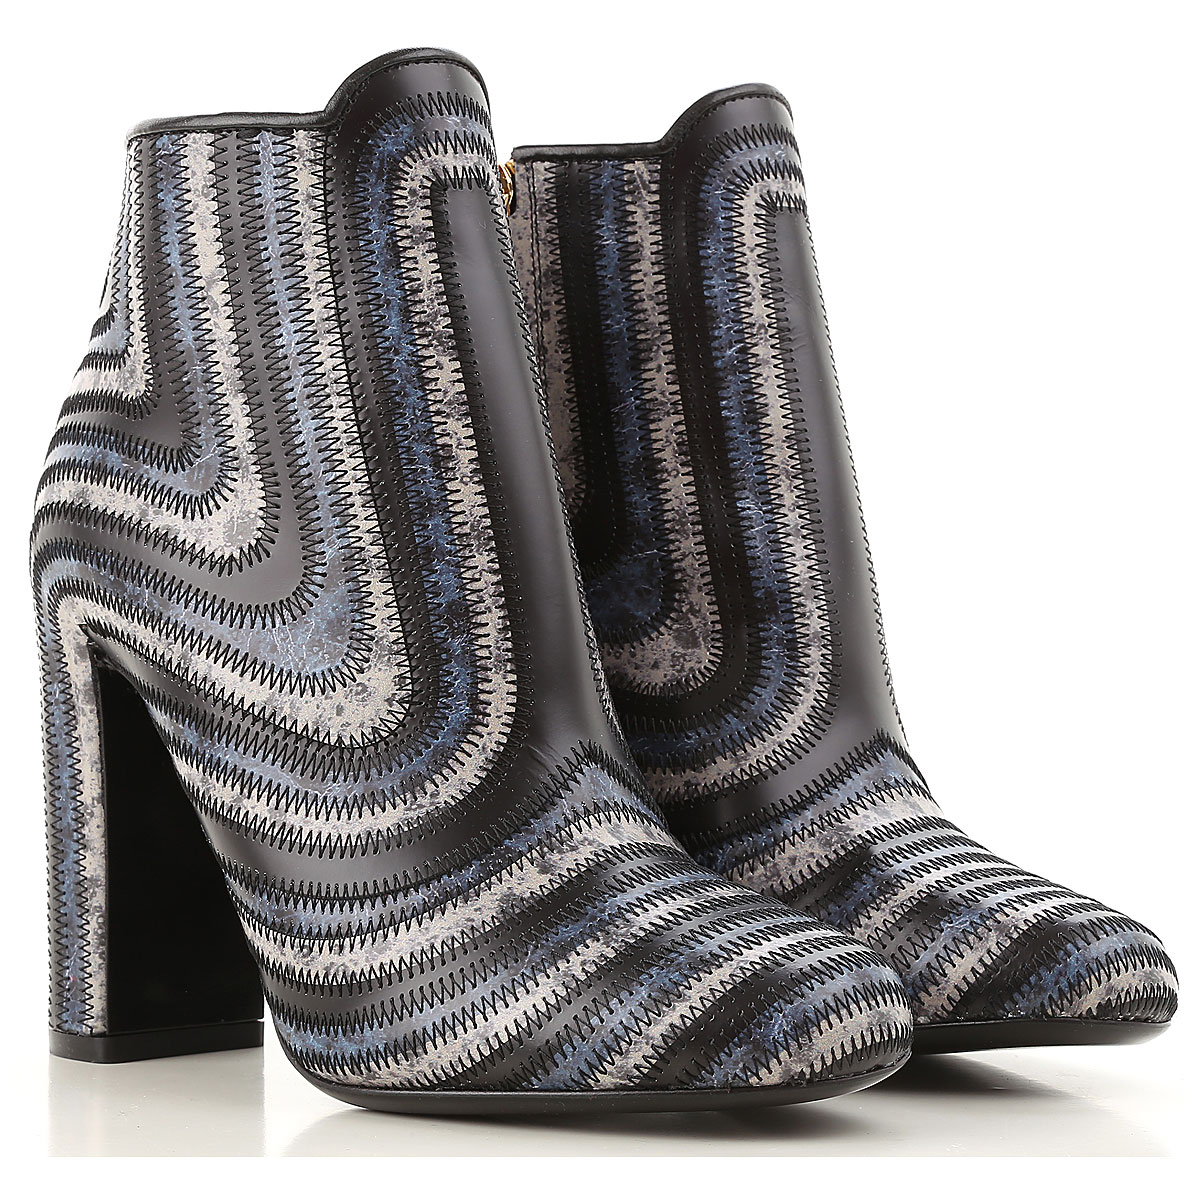 Image of Salvatore Ferragamo Boots for Women, Booties On Sale in Outlet, Storm, Leather, 2017, 10.5 5.5 6.5 8.5 9.5